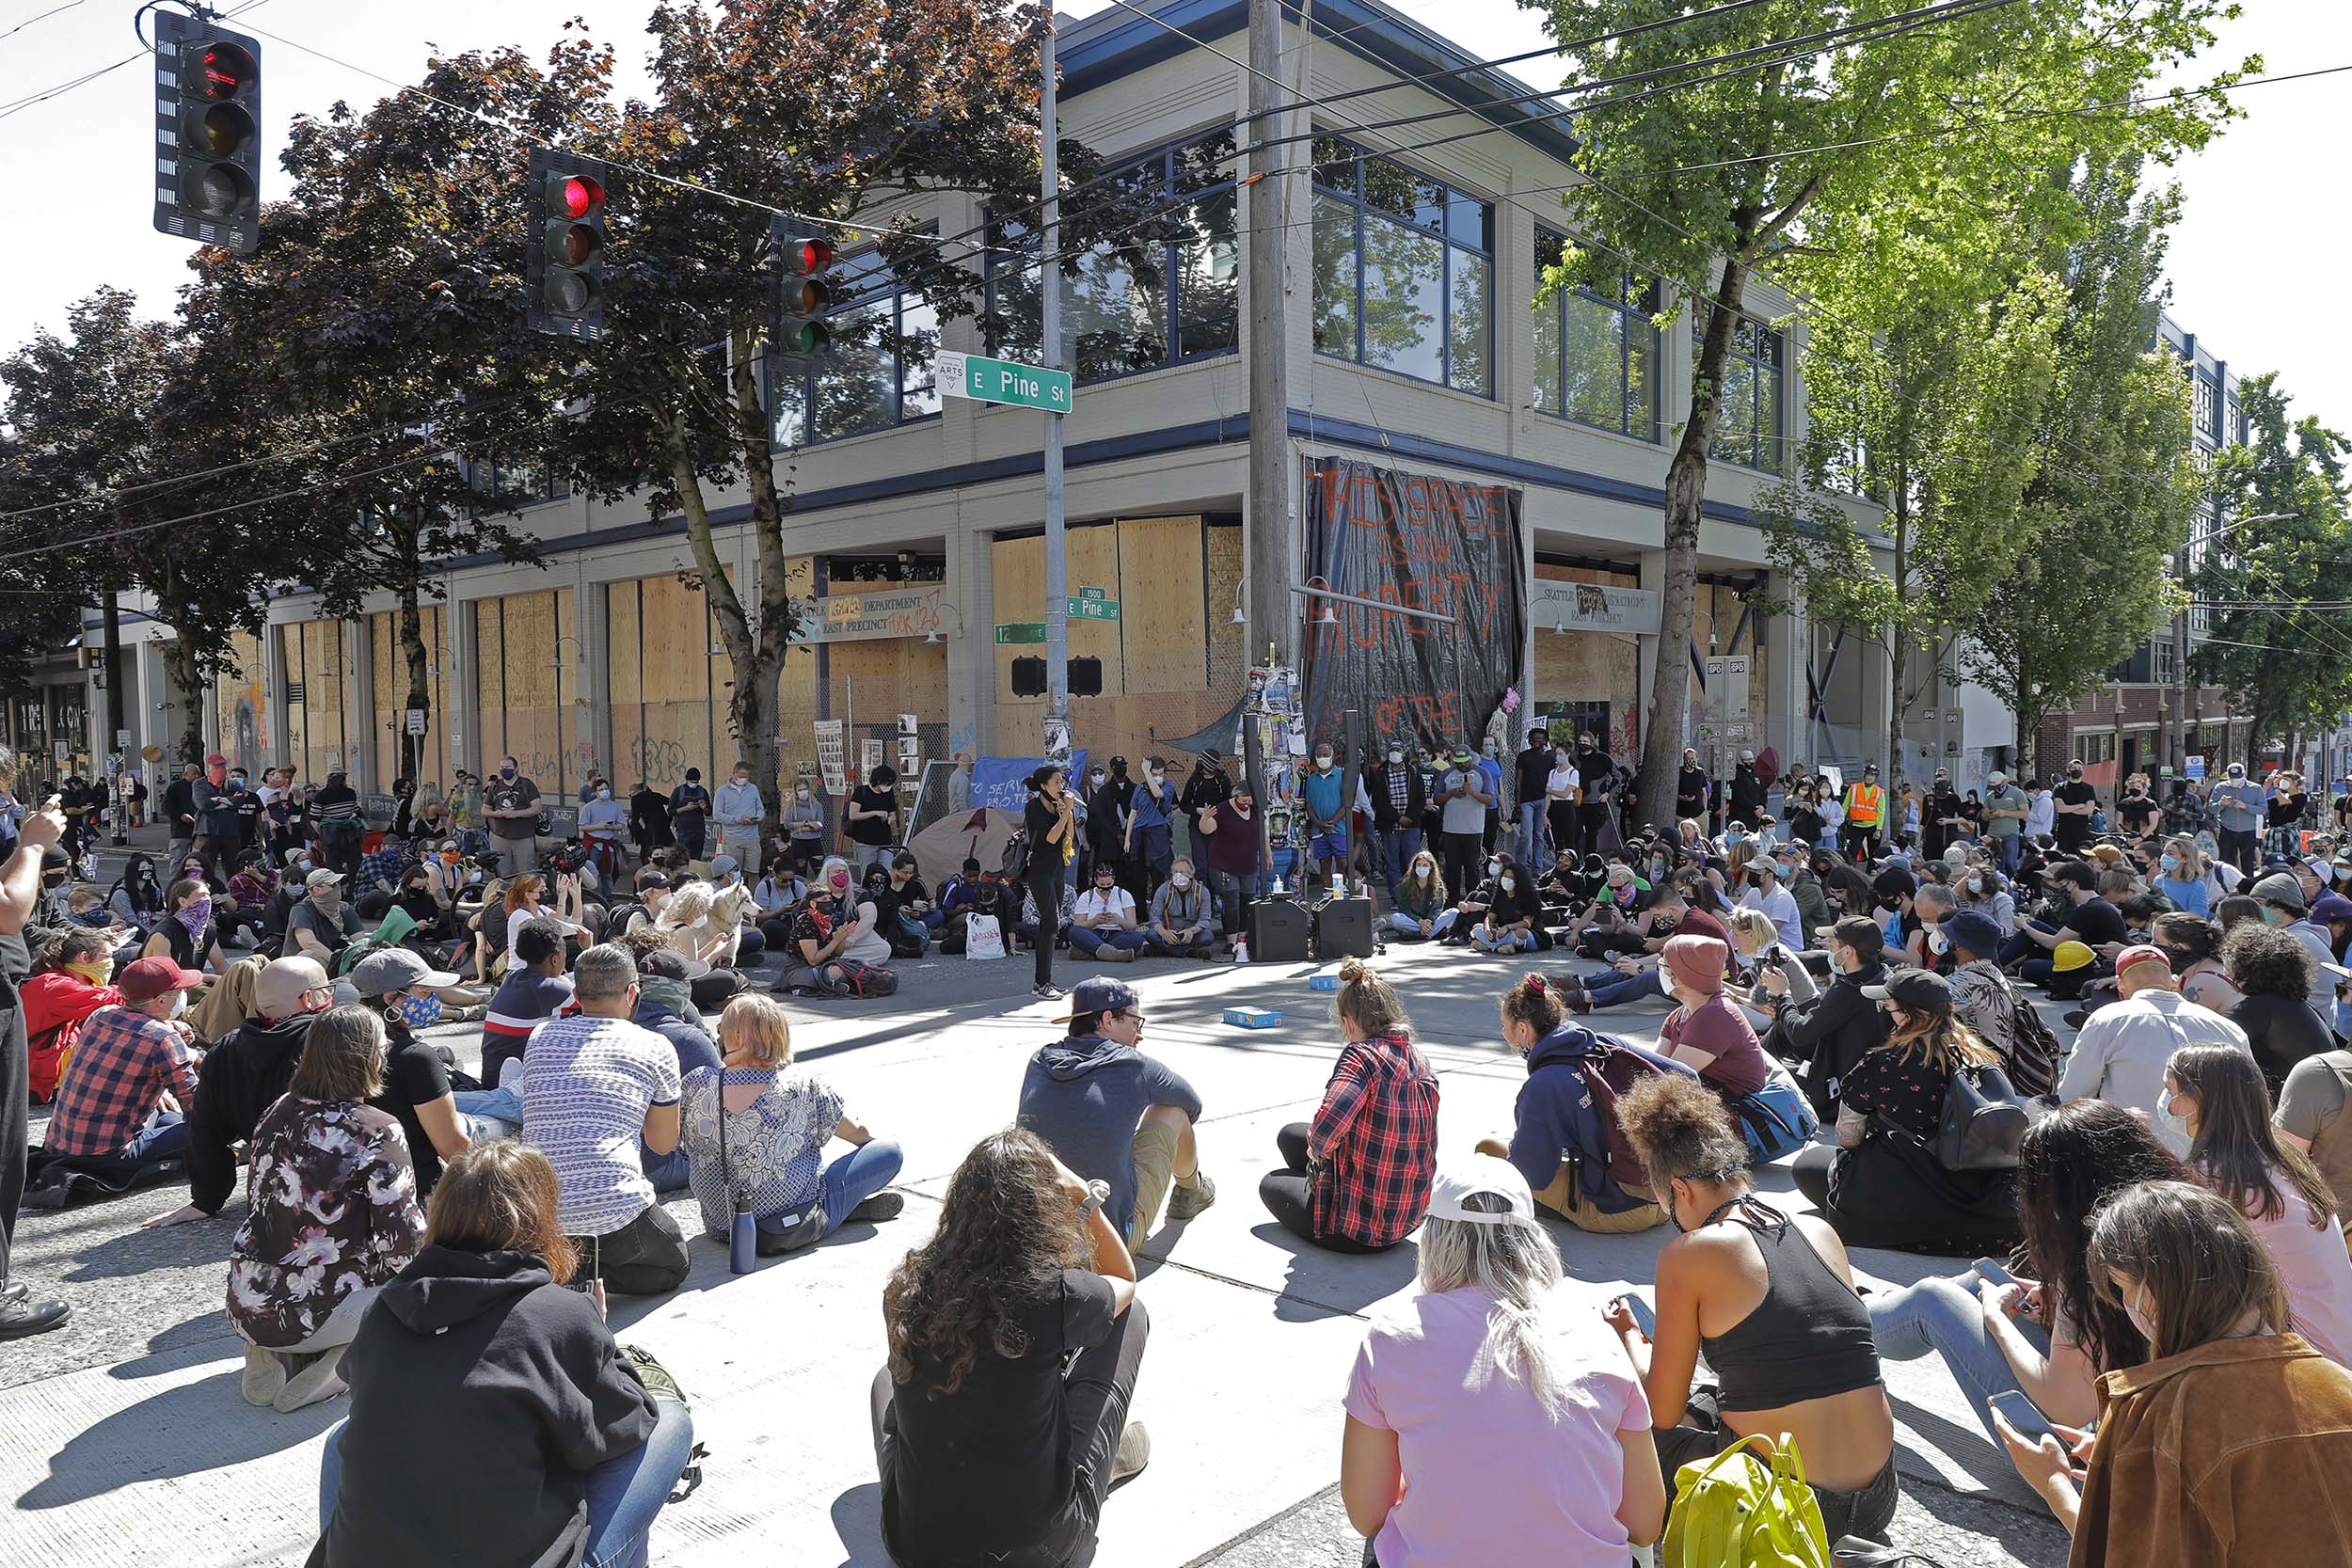 Protesters listen to a speaker as they sit in front of the Seattle Police Department East Precinct building, on Thursday, June 11.